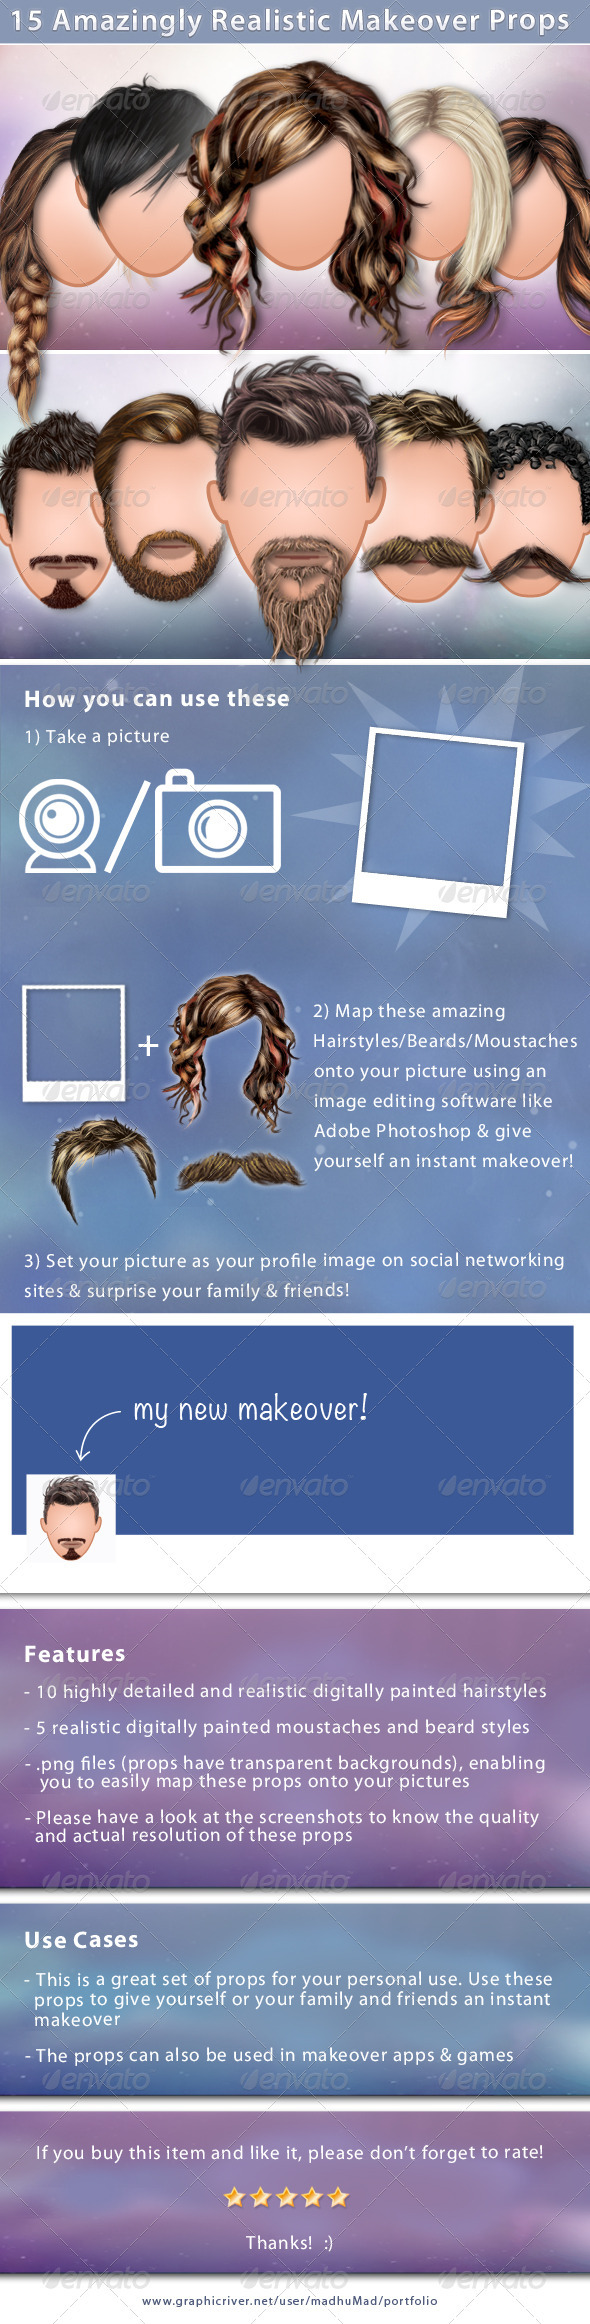 15 Realistic Makeover Props - Miscellaneous Illustrations